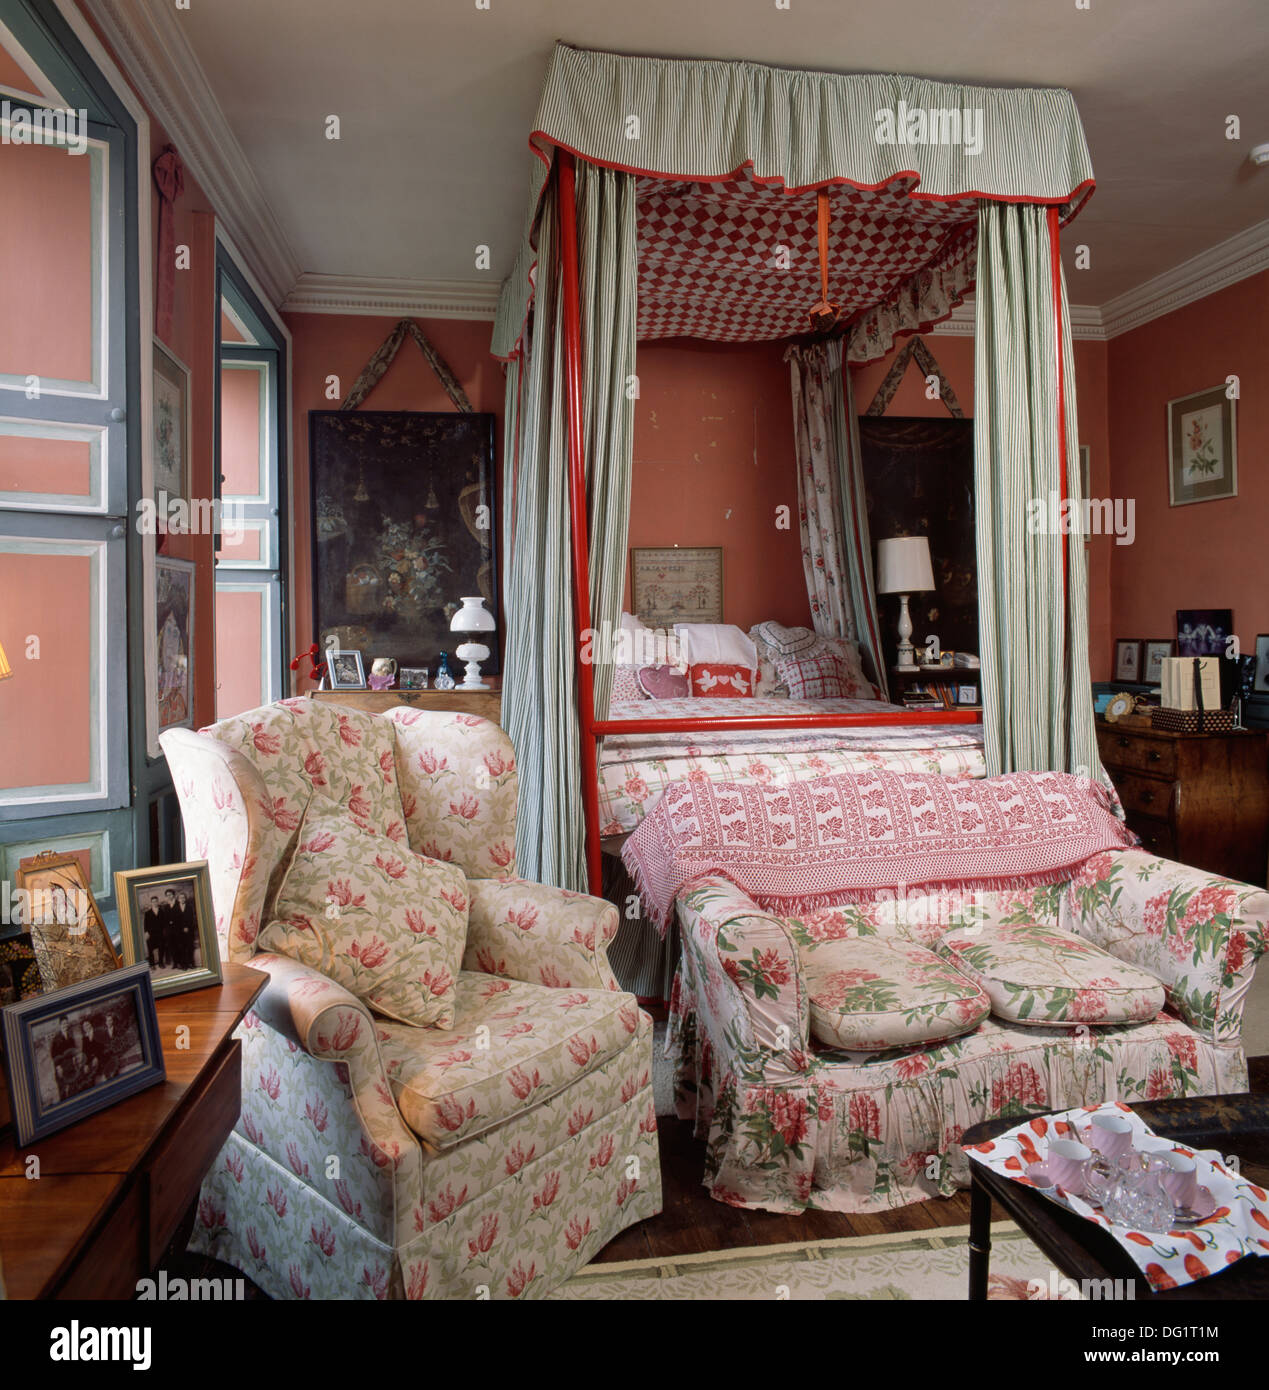 Floral patterned sofa and armchair in traditional bedroom with red ...